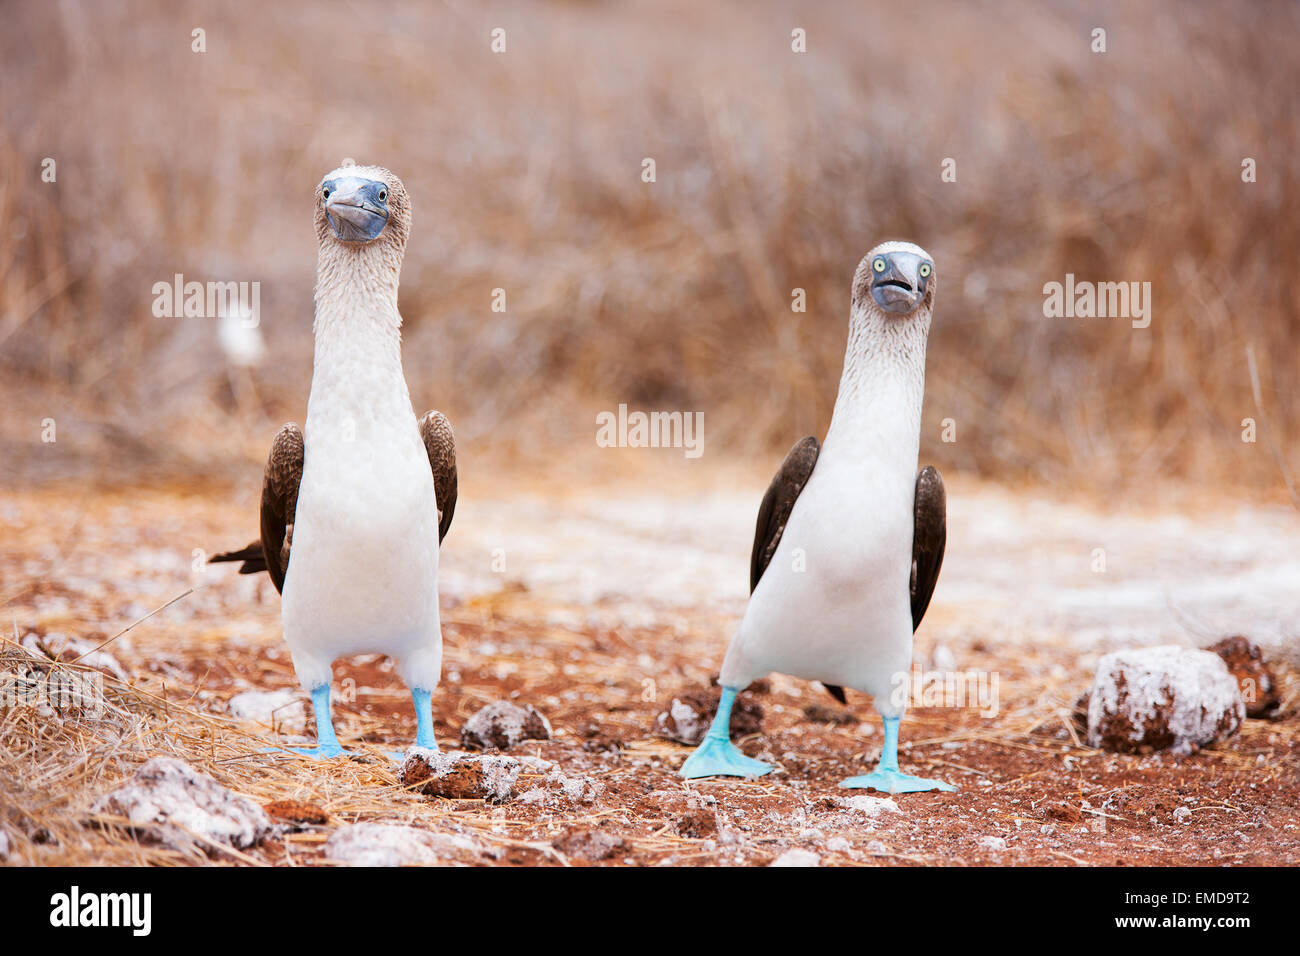 Blue footed booby mating dance - Stock Image